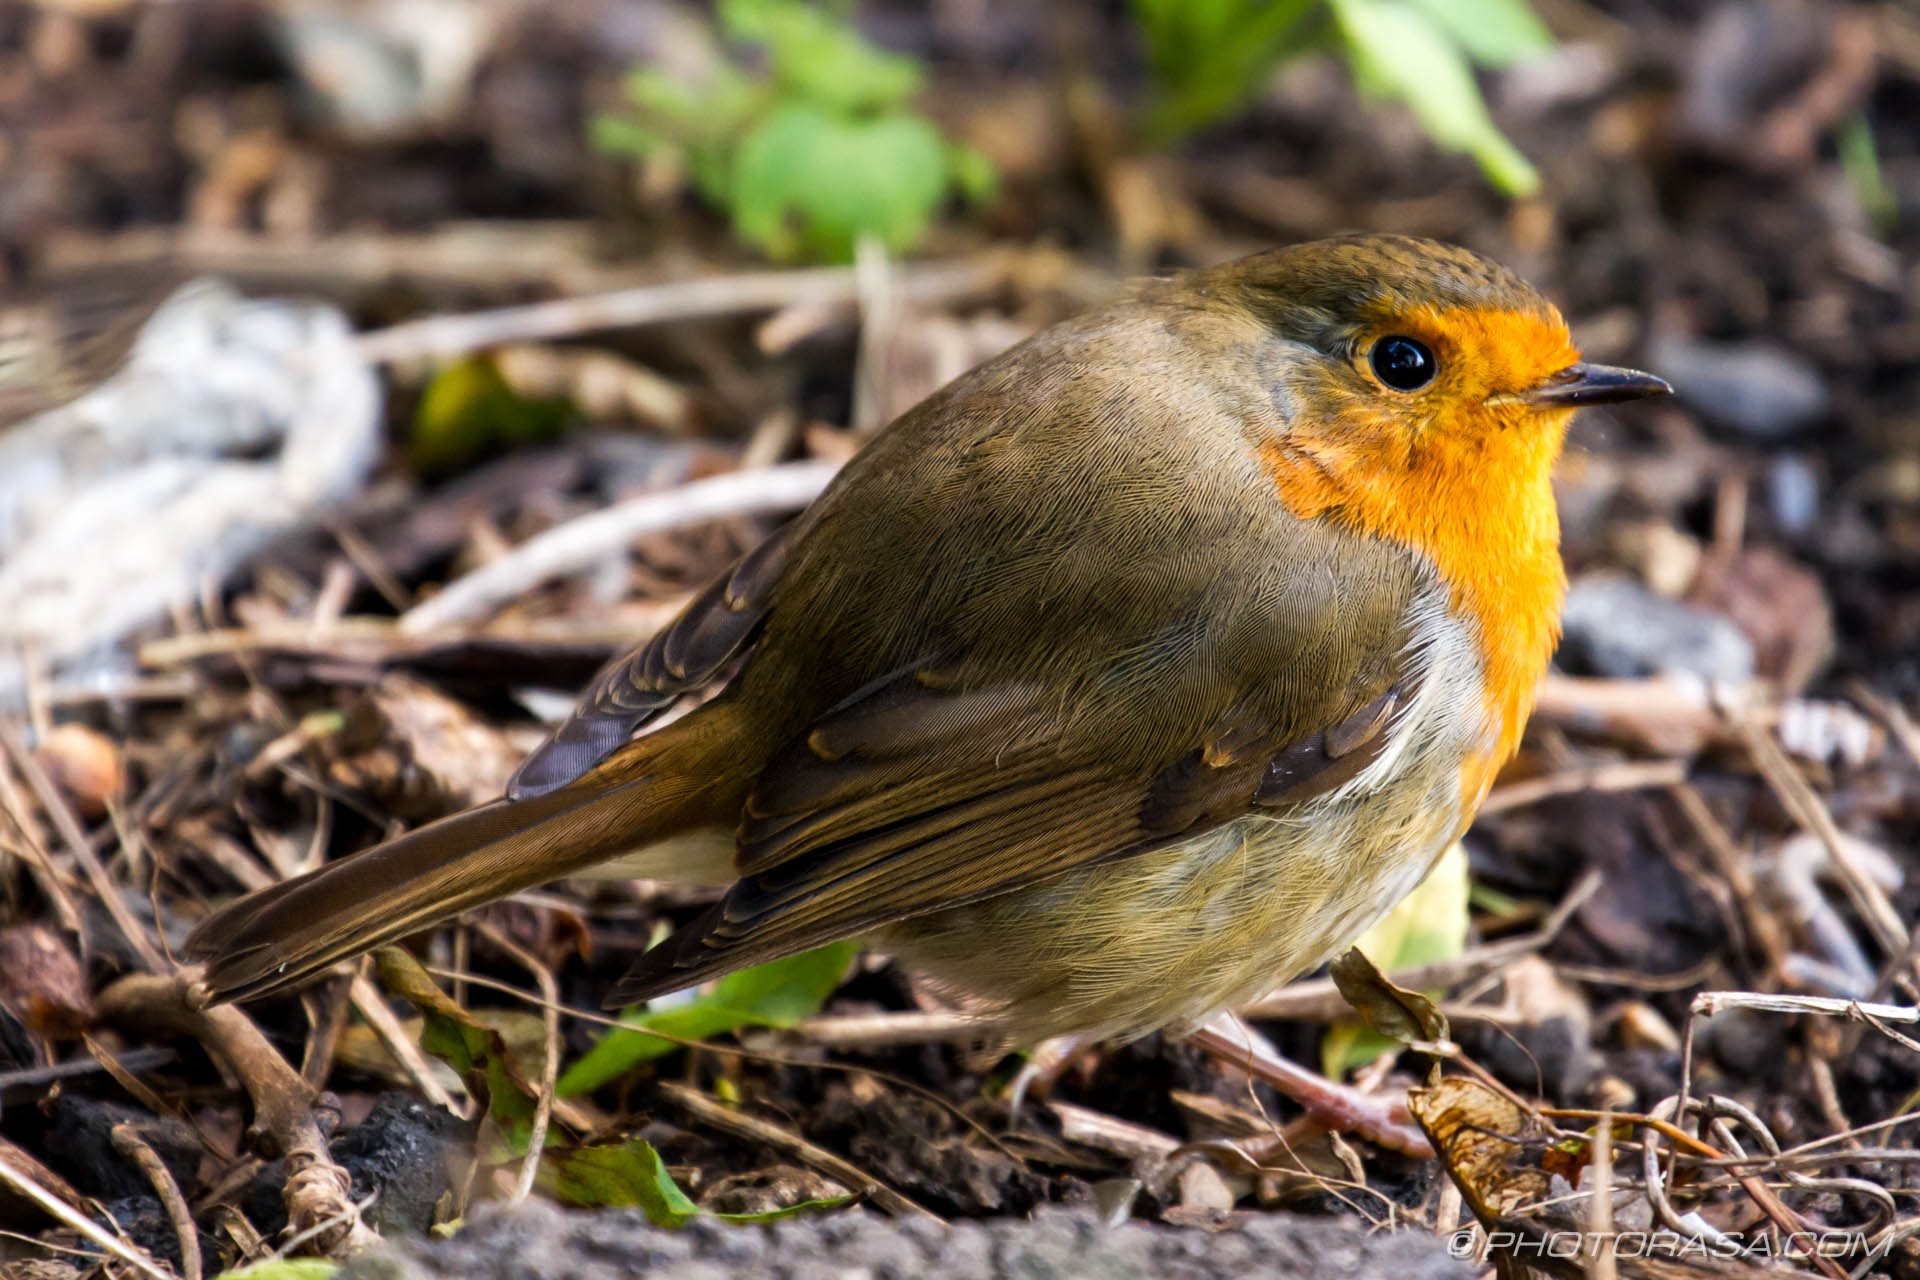 http://photorasa.com/robins/puffed-up-robin-redbreast/